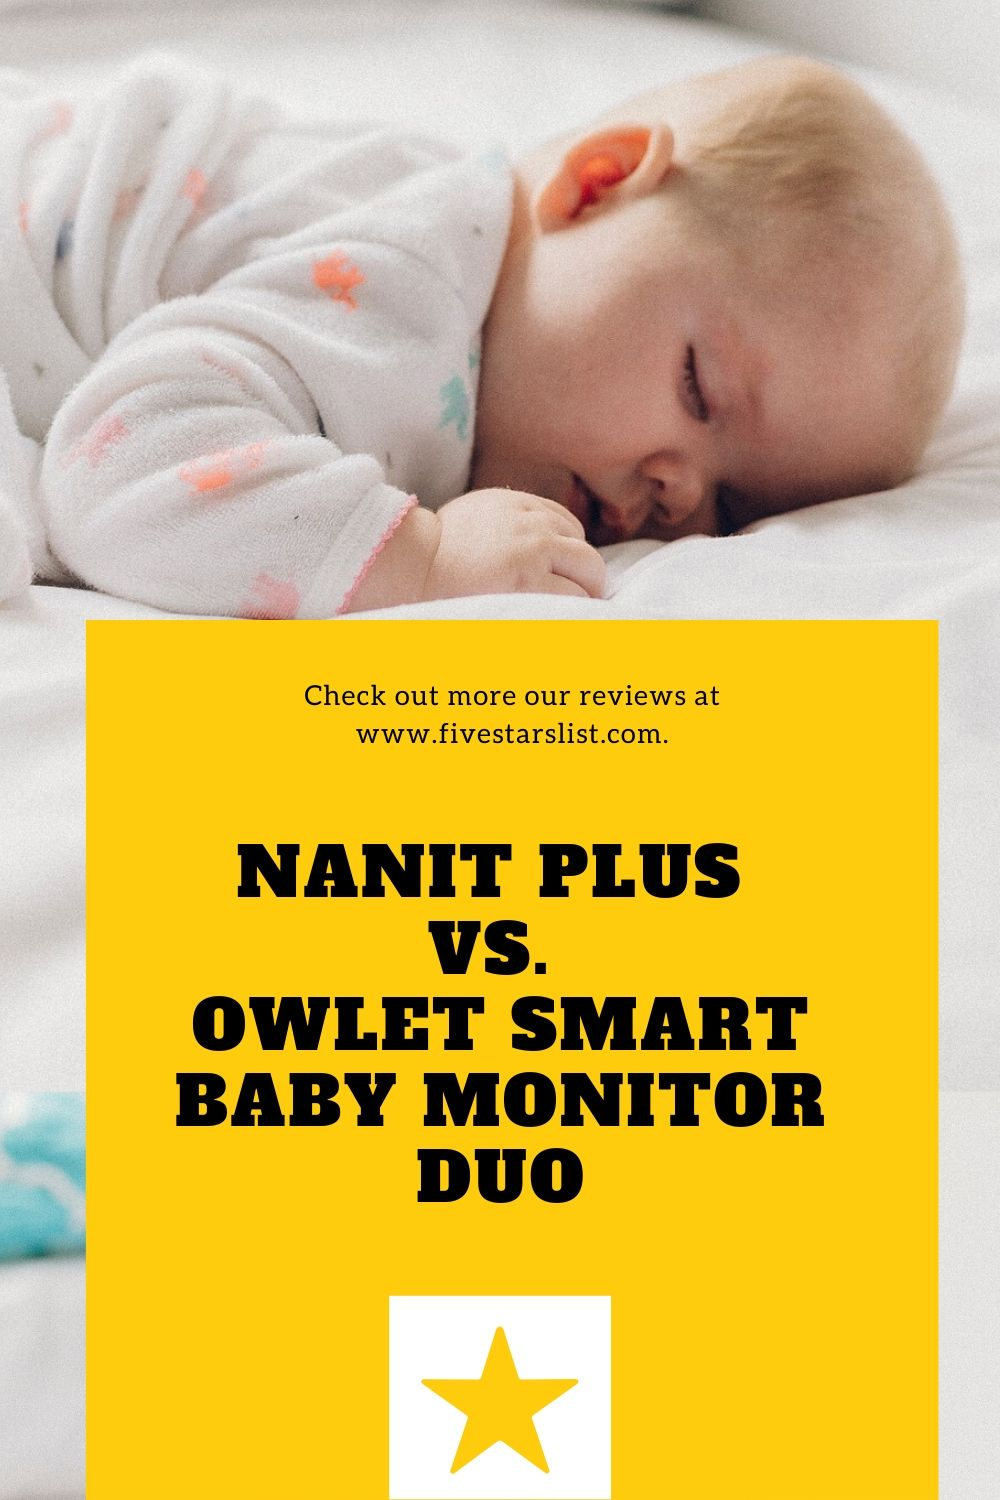 Nanit Plus vs. Owlet Smart Baby Monitor Duo